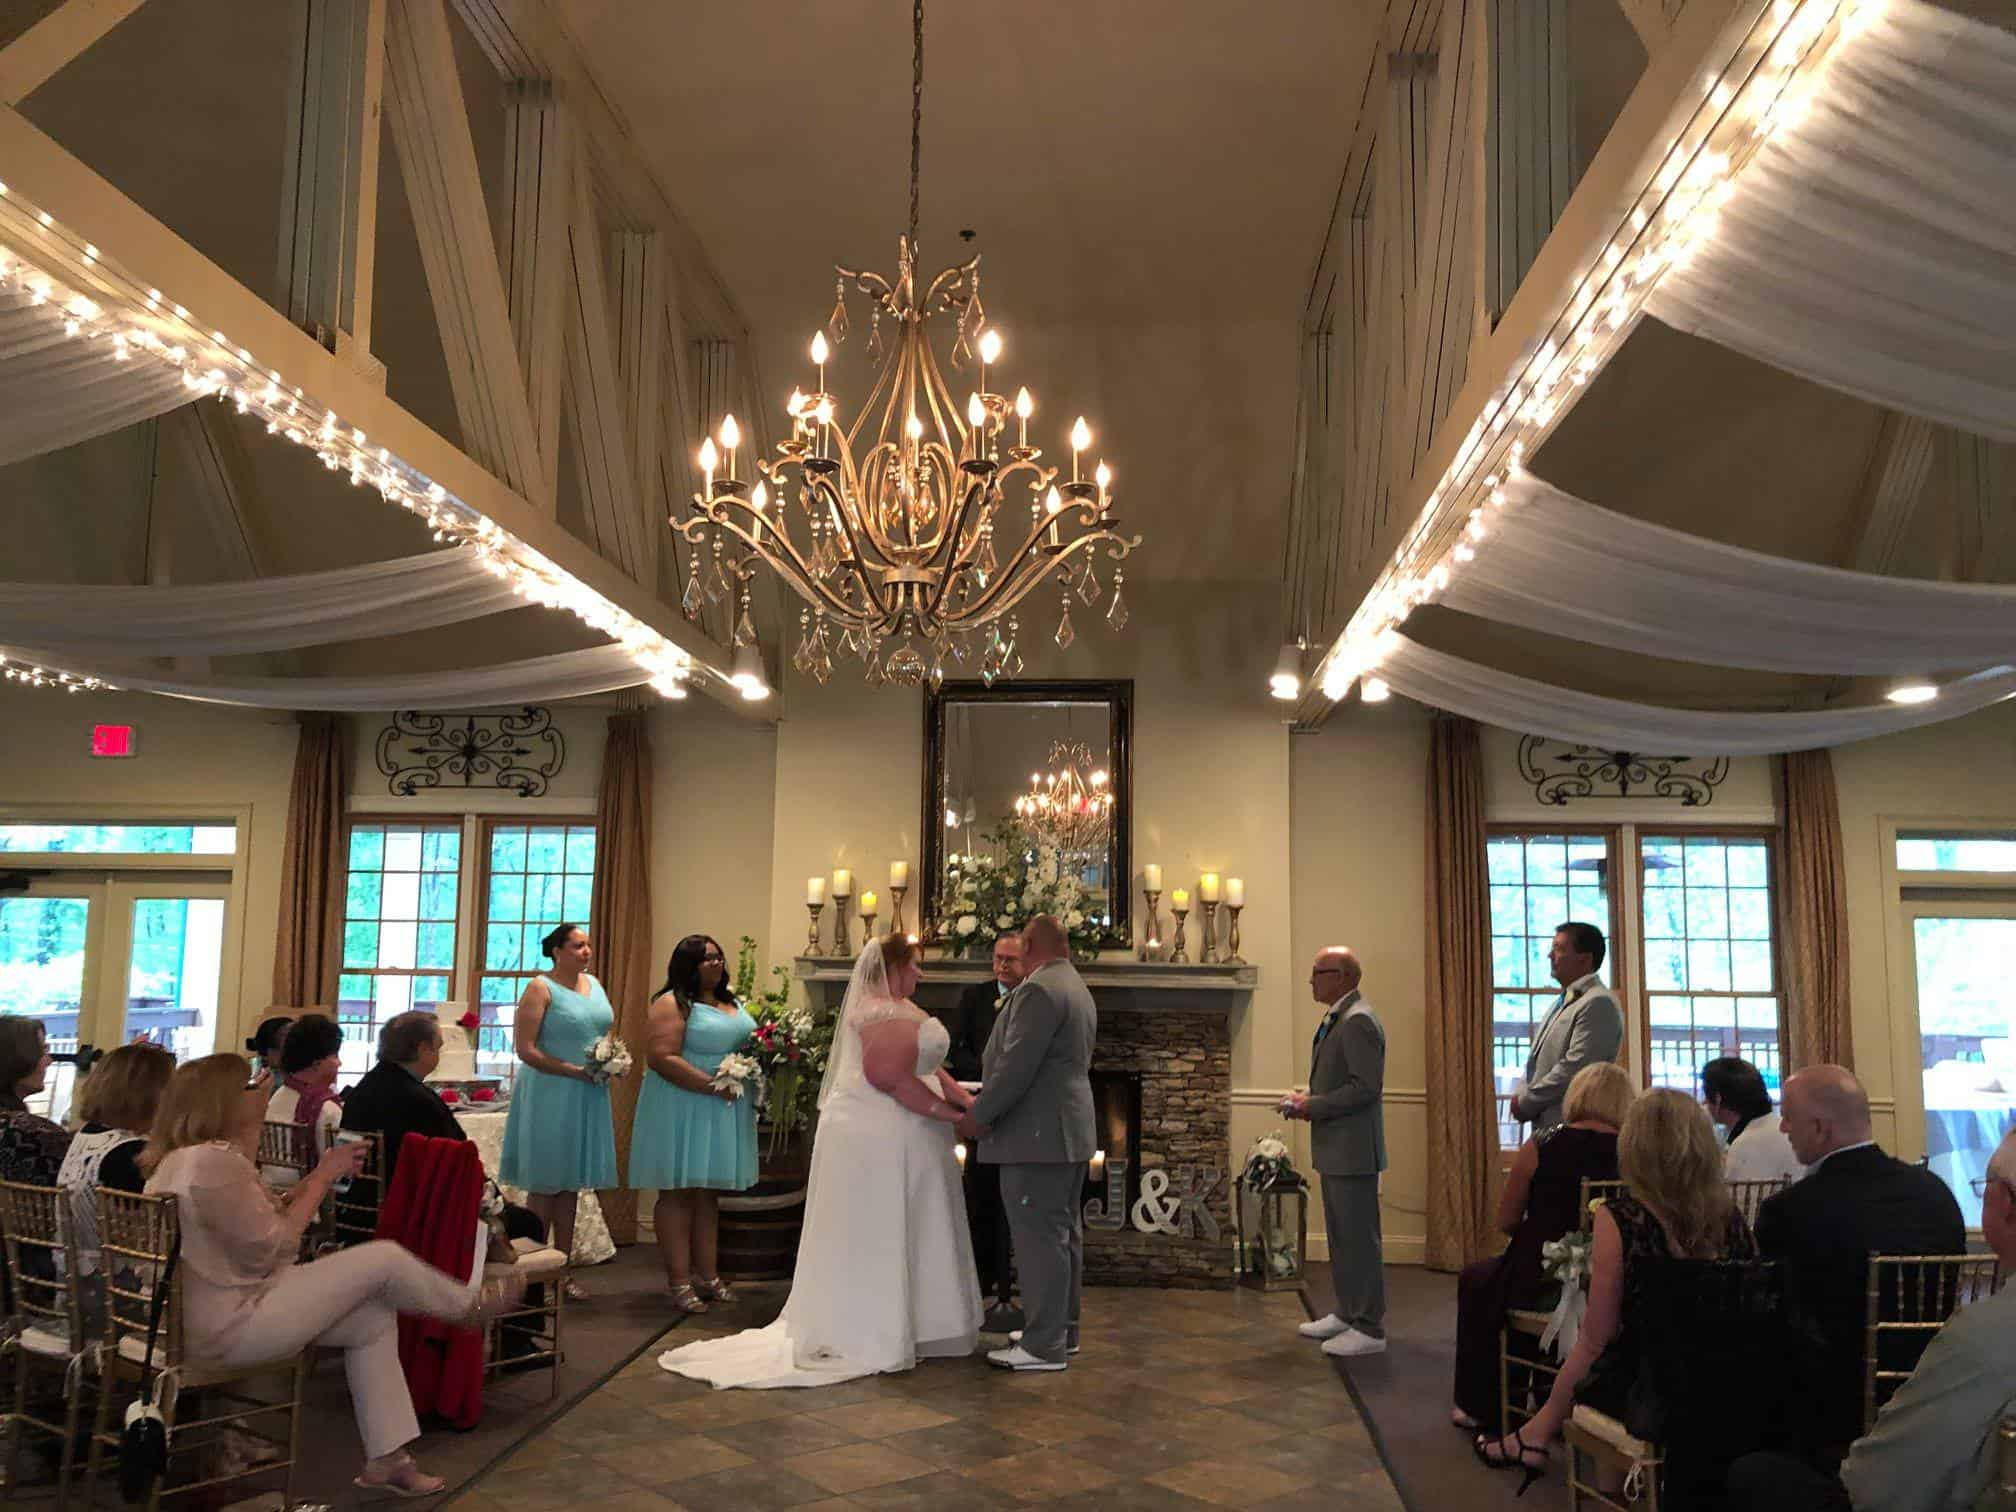 Bride and Groom at Indoor Wedding Ceremony Holding Hands at Ceremony Altar with Bridesmaids in Blue Bridesmaids Dresses and Officiant and Groomsmen